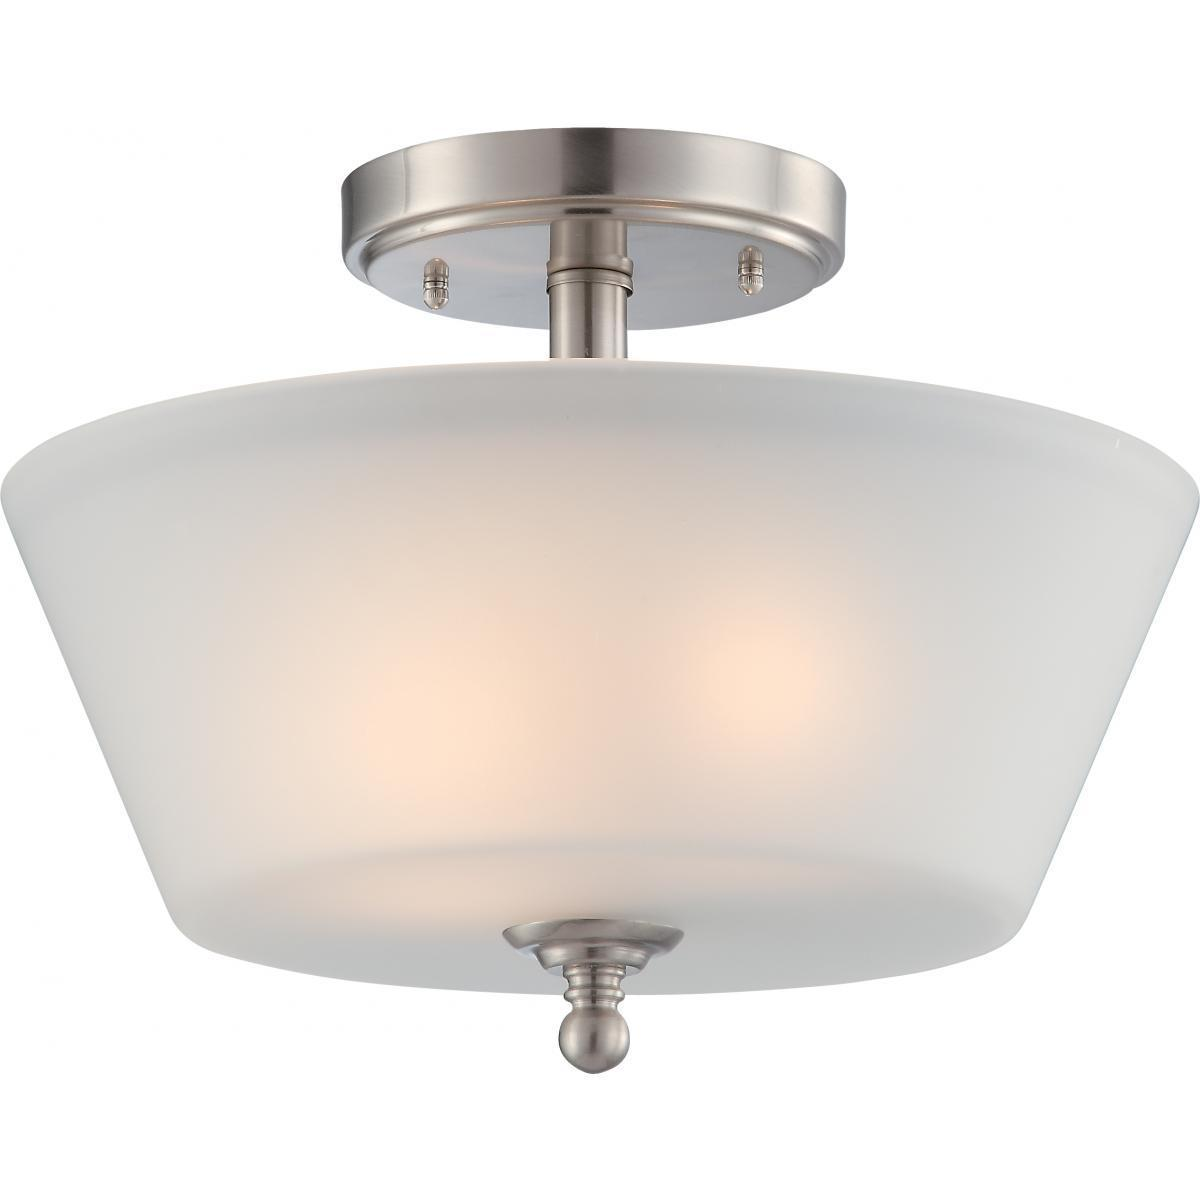 2 Light Semi Flush Fixture With Frosted